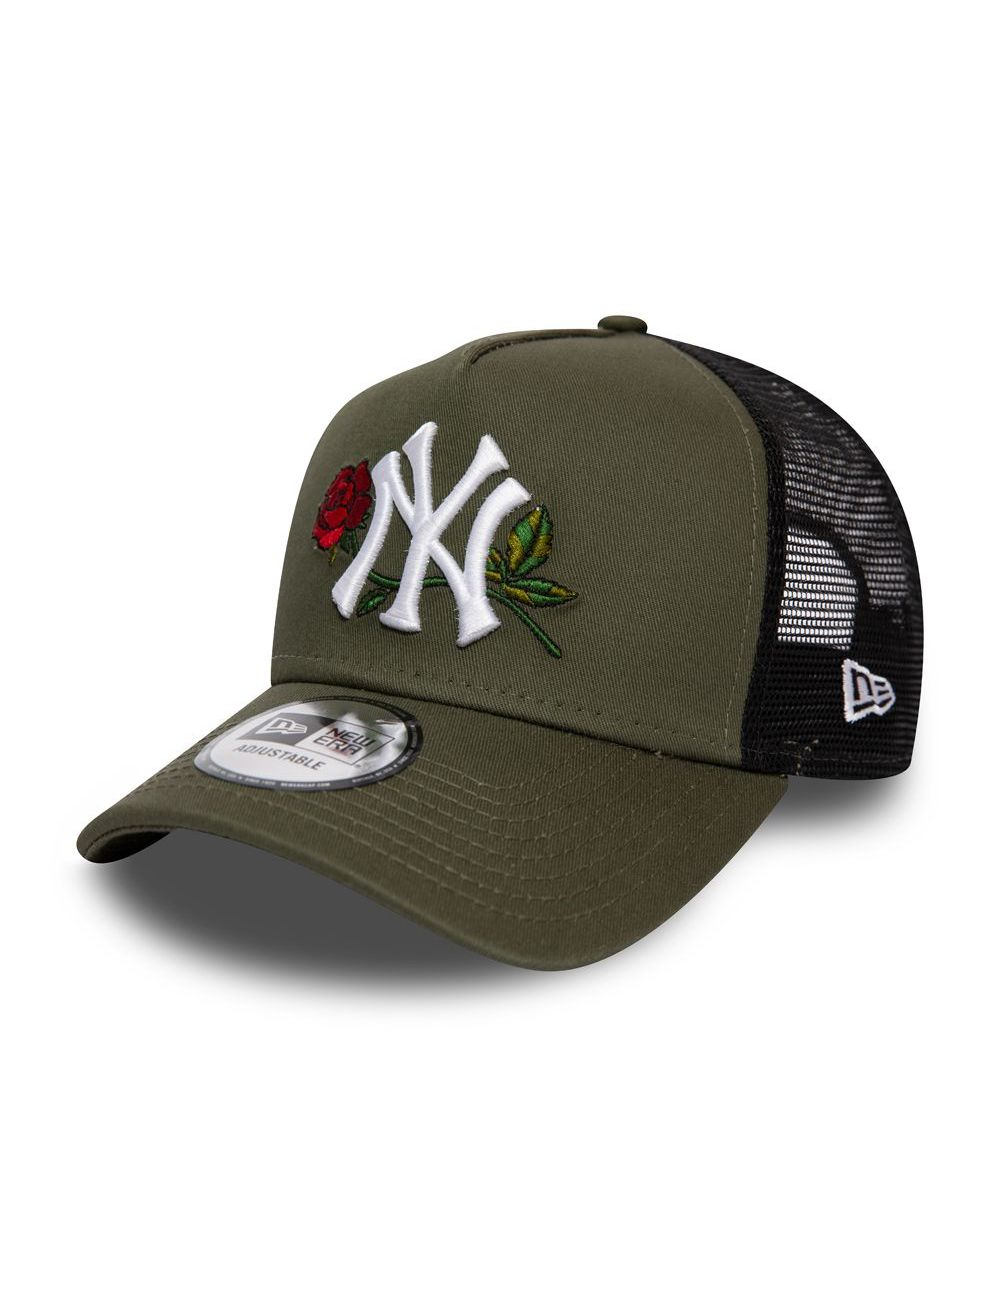 Casquette TRUCKER Twine NY Yankees